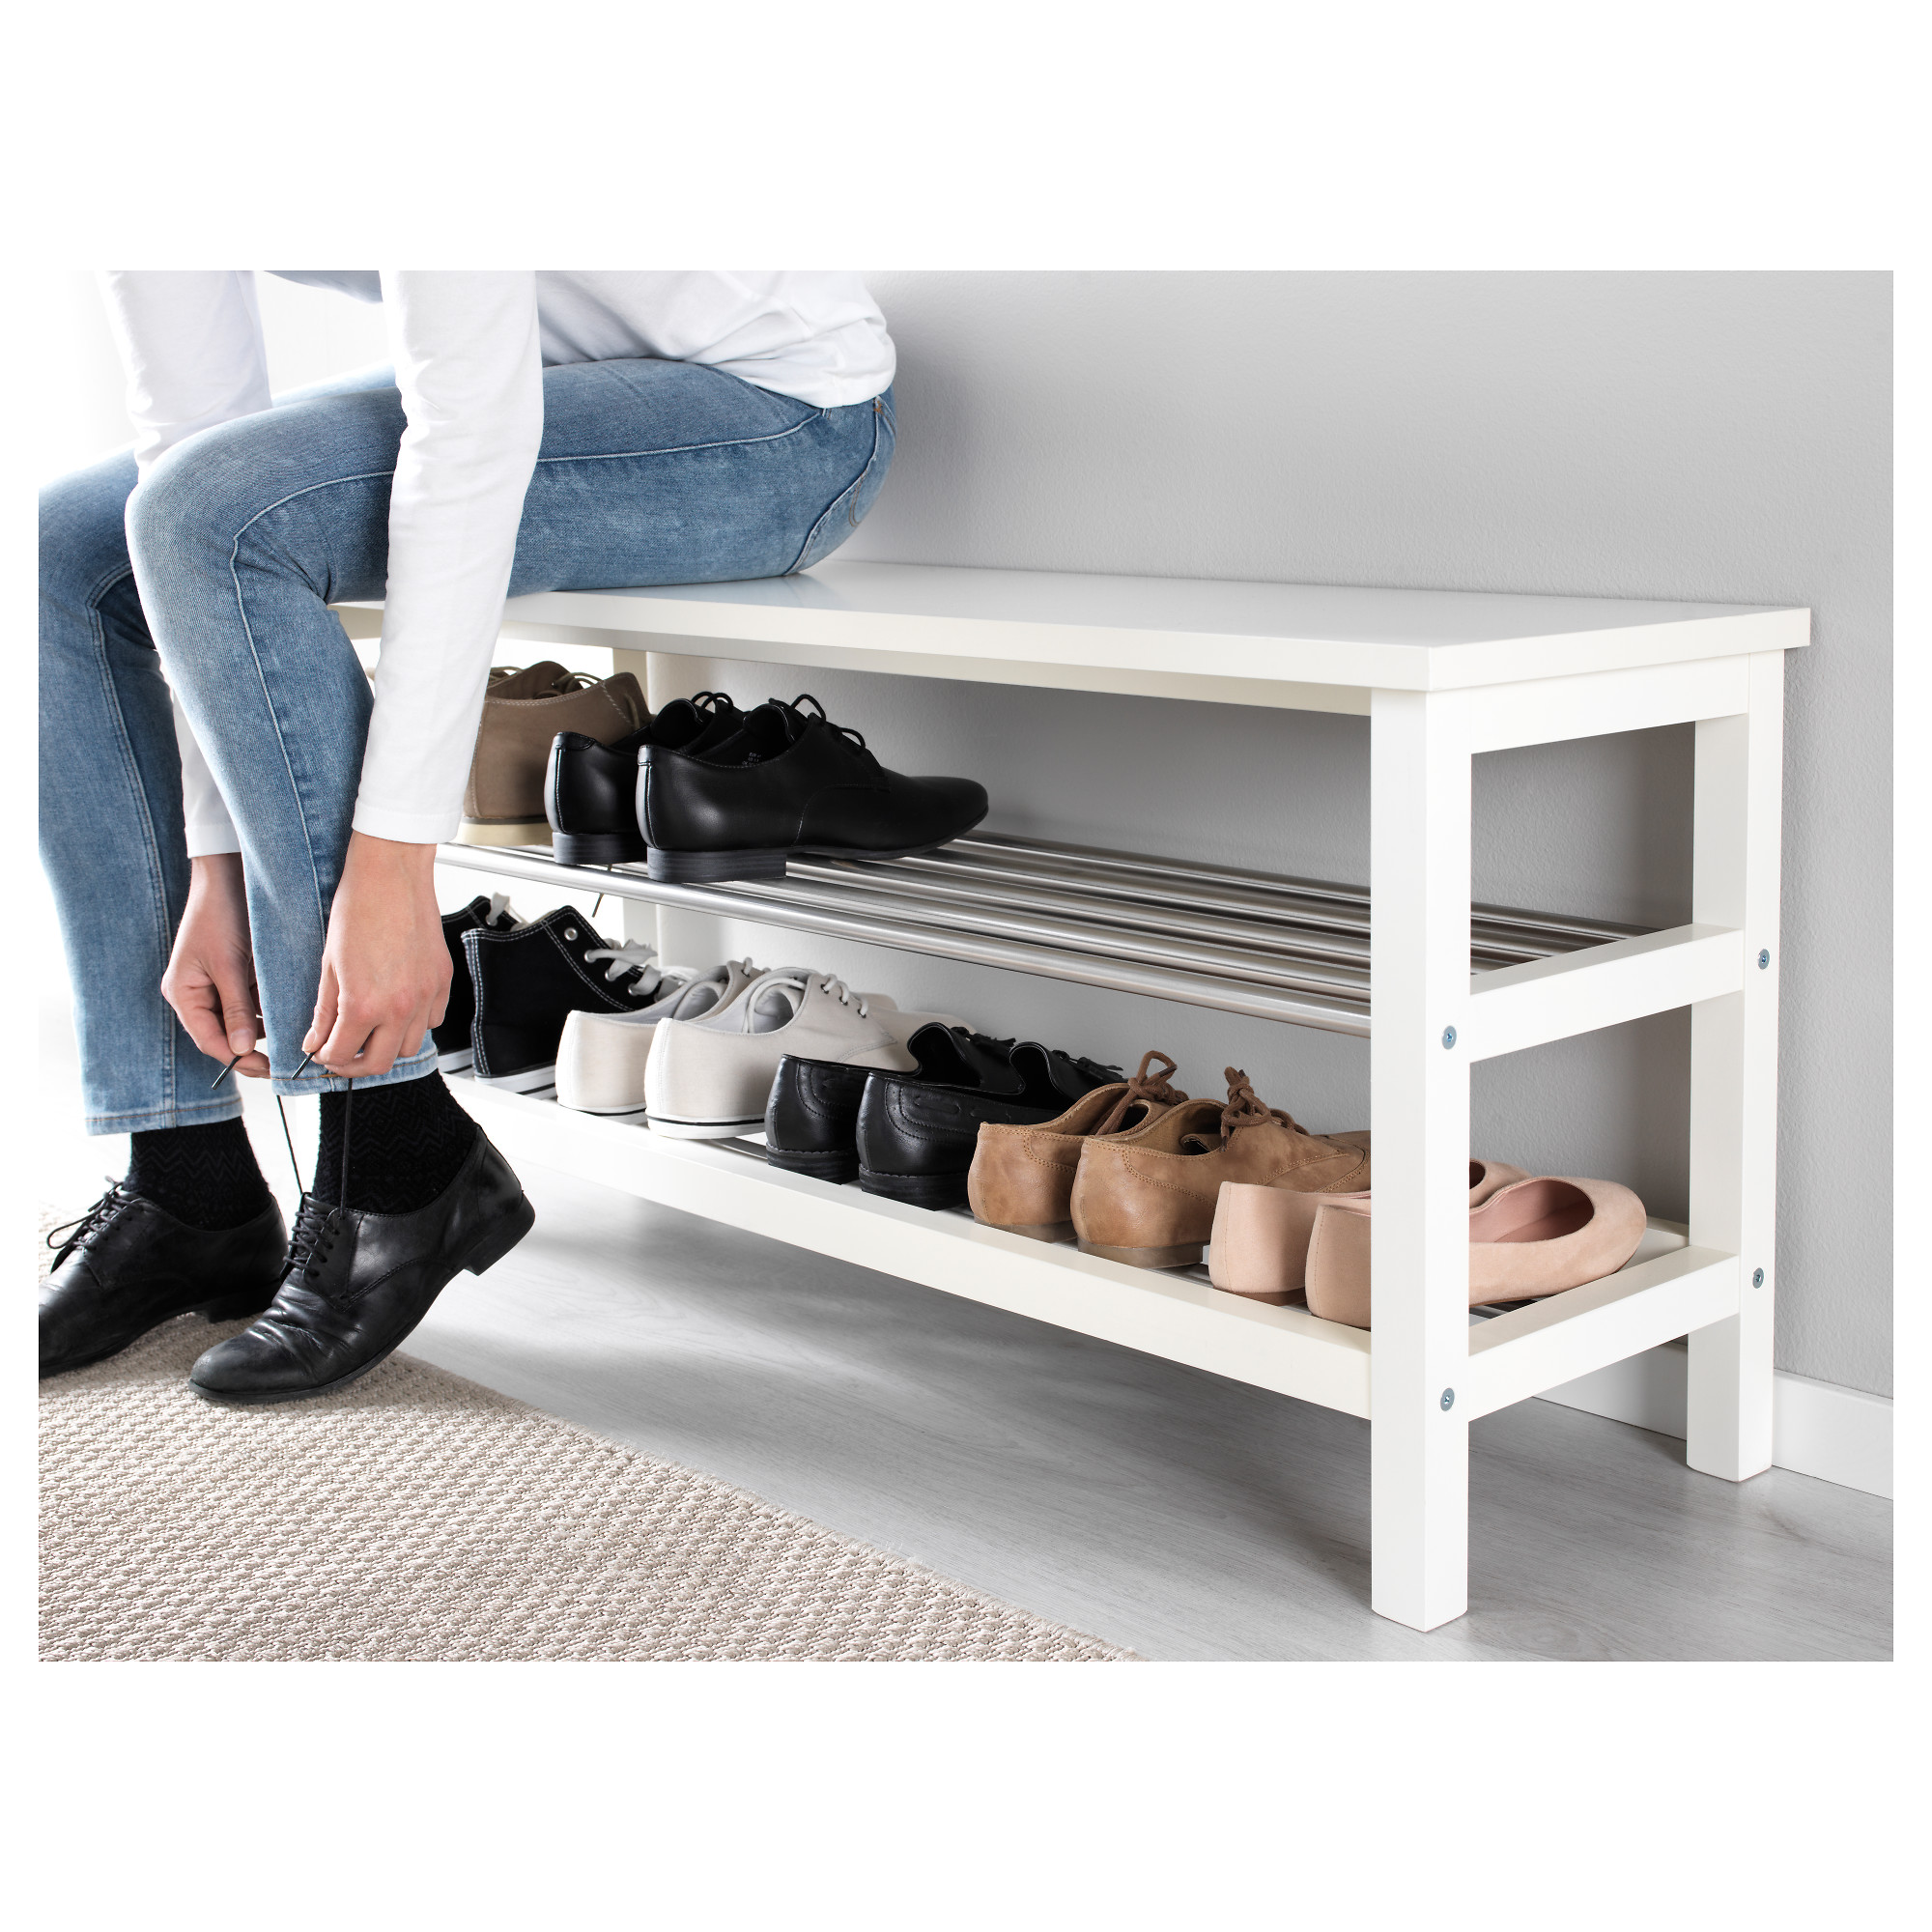 Design Ikea Shoe Storage tjusig bench with shoe storage white ikea